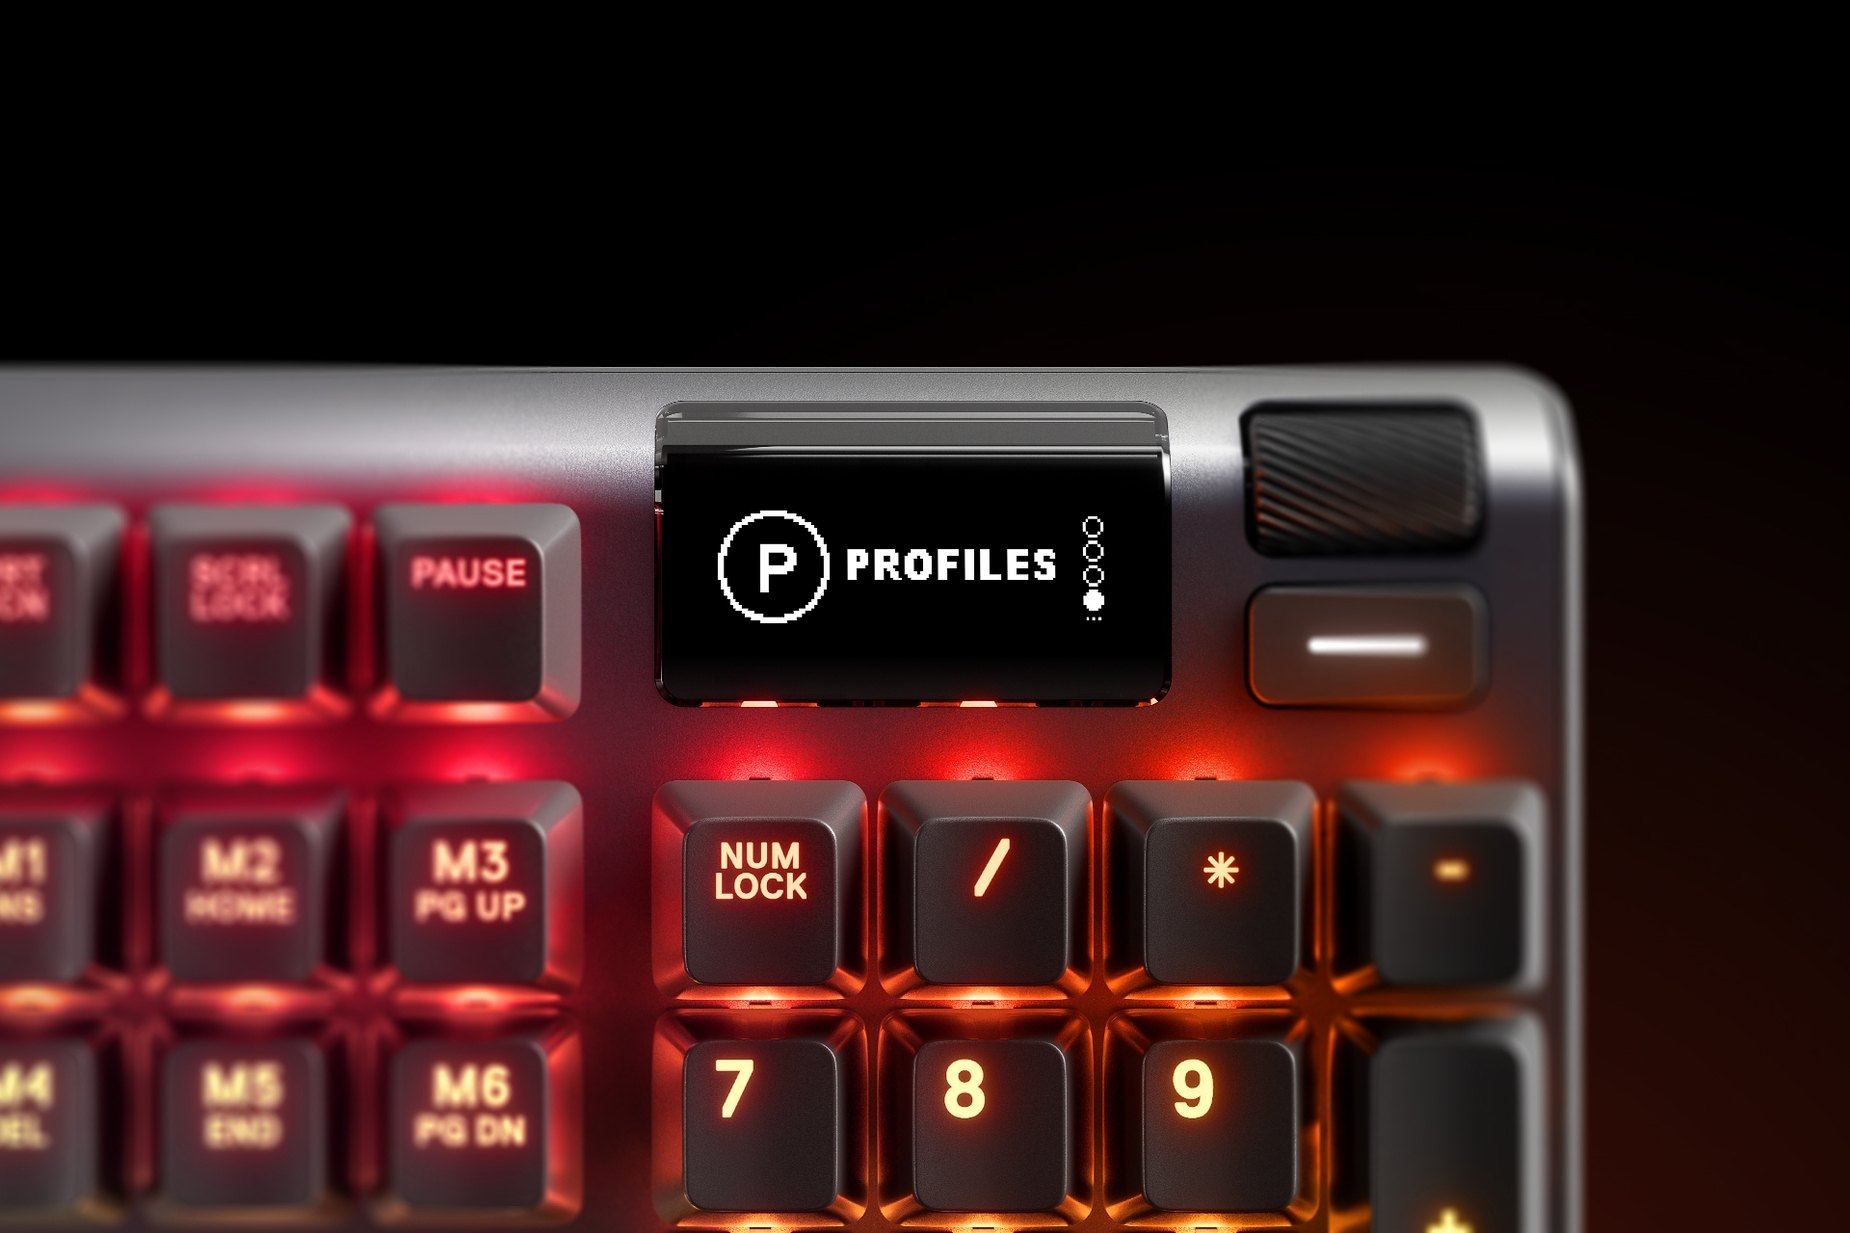 Zoomed in view of the multimedia and settings controls/volume roller on the US English - Apex Pro gaming keyboard